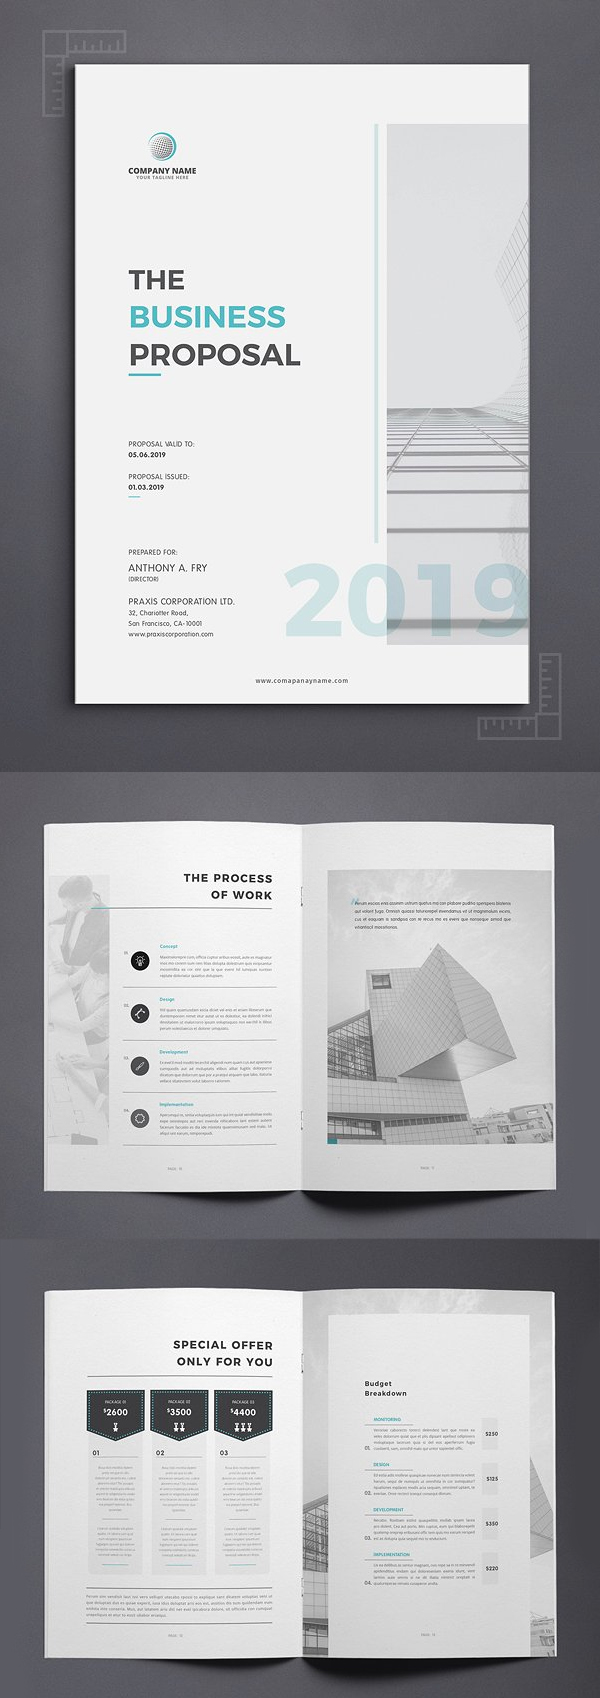 Professional Business Proposal Templates Design - 1